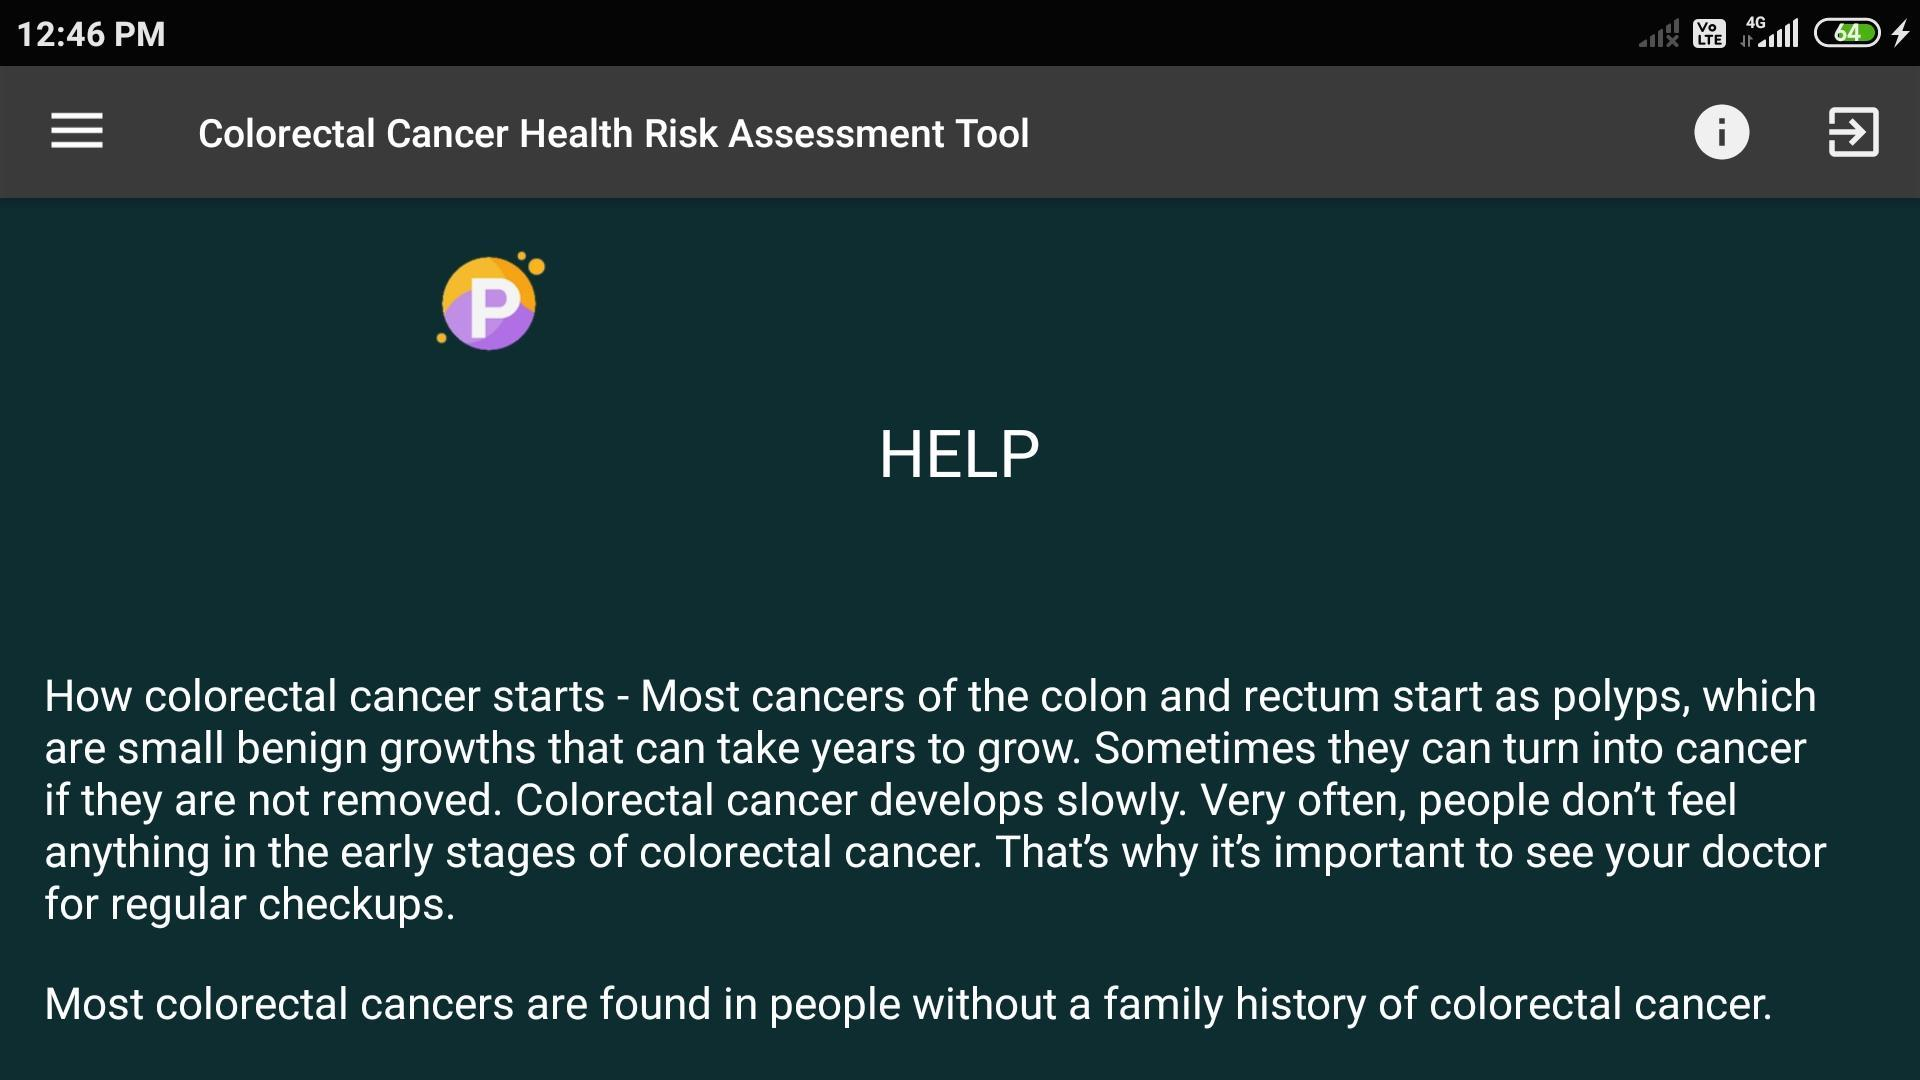 Colorectal Cancer Risk Assessment Tool For Android Apk Download